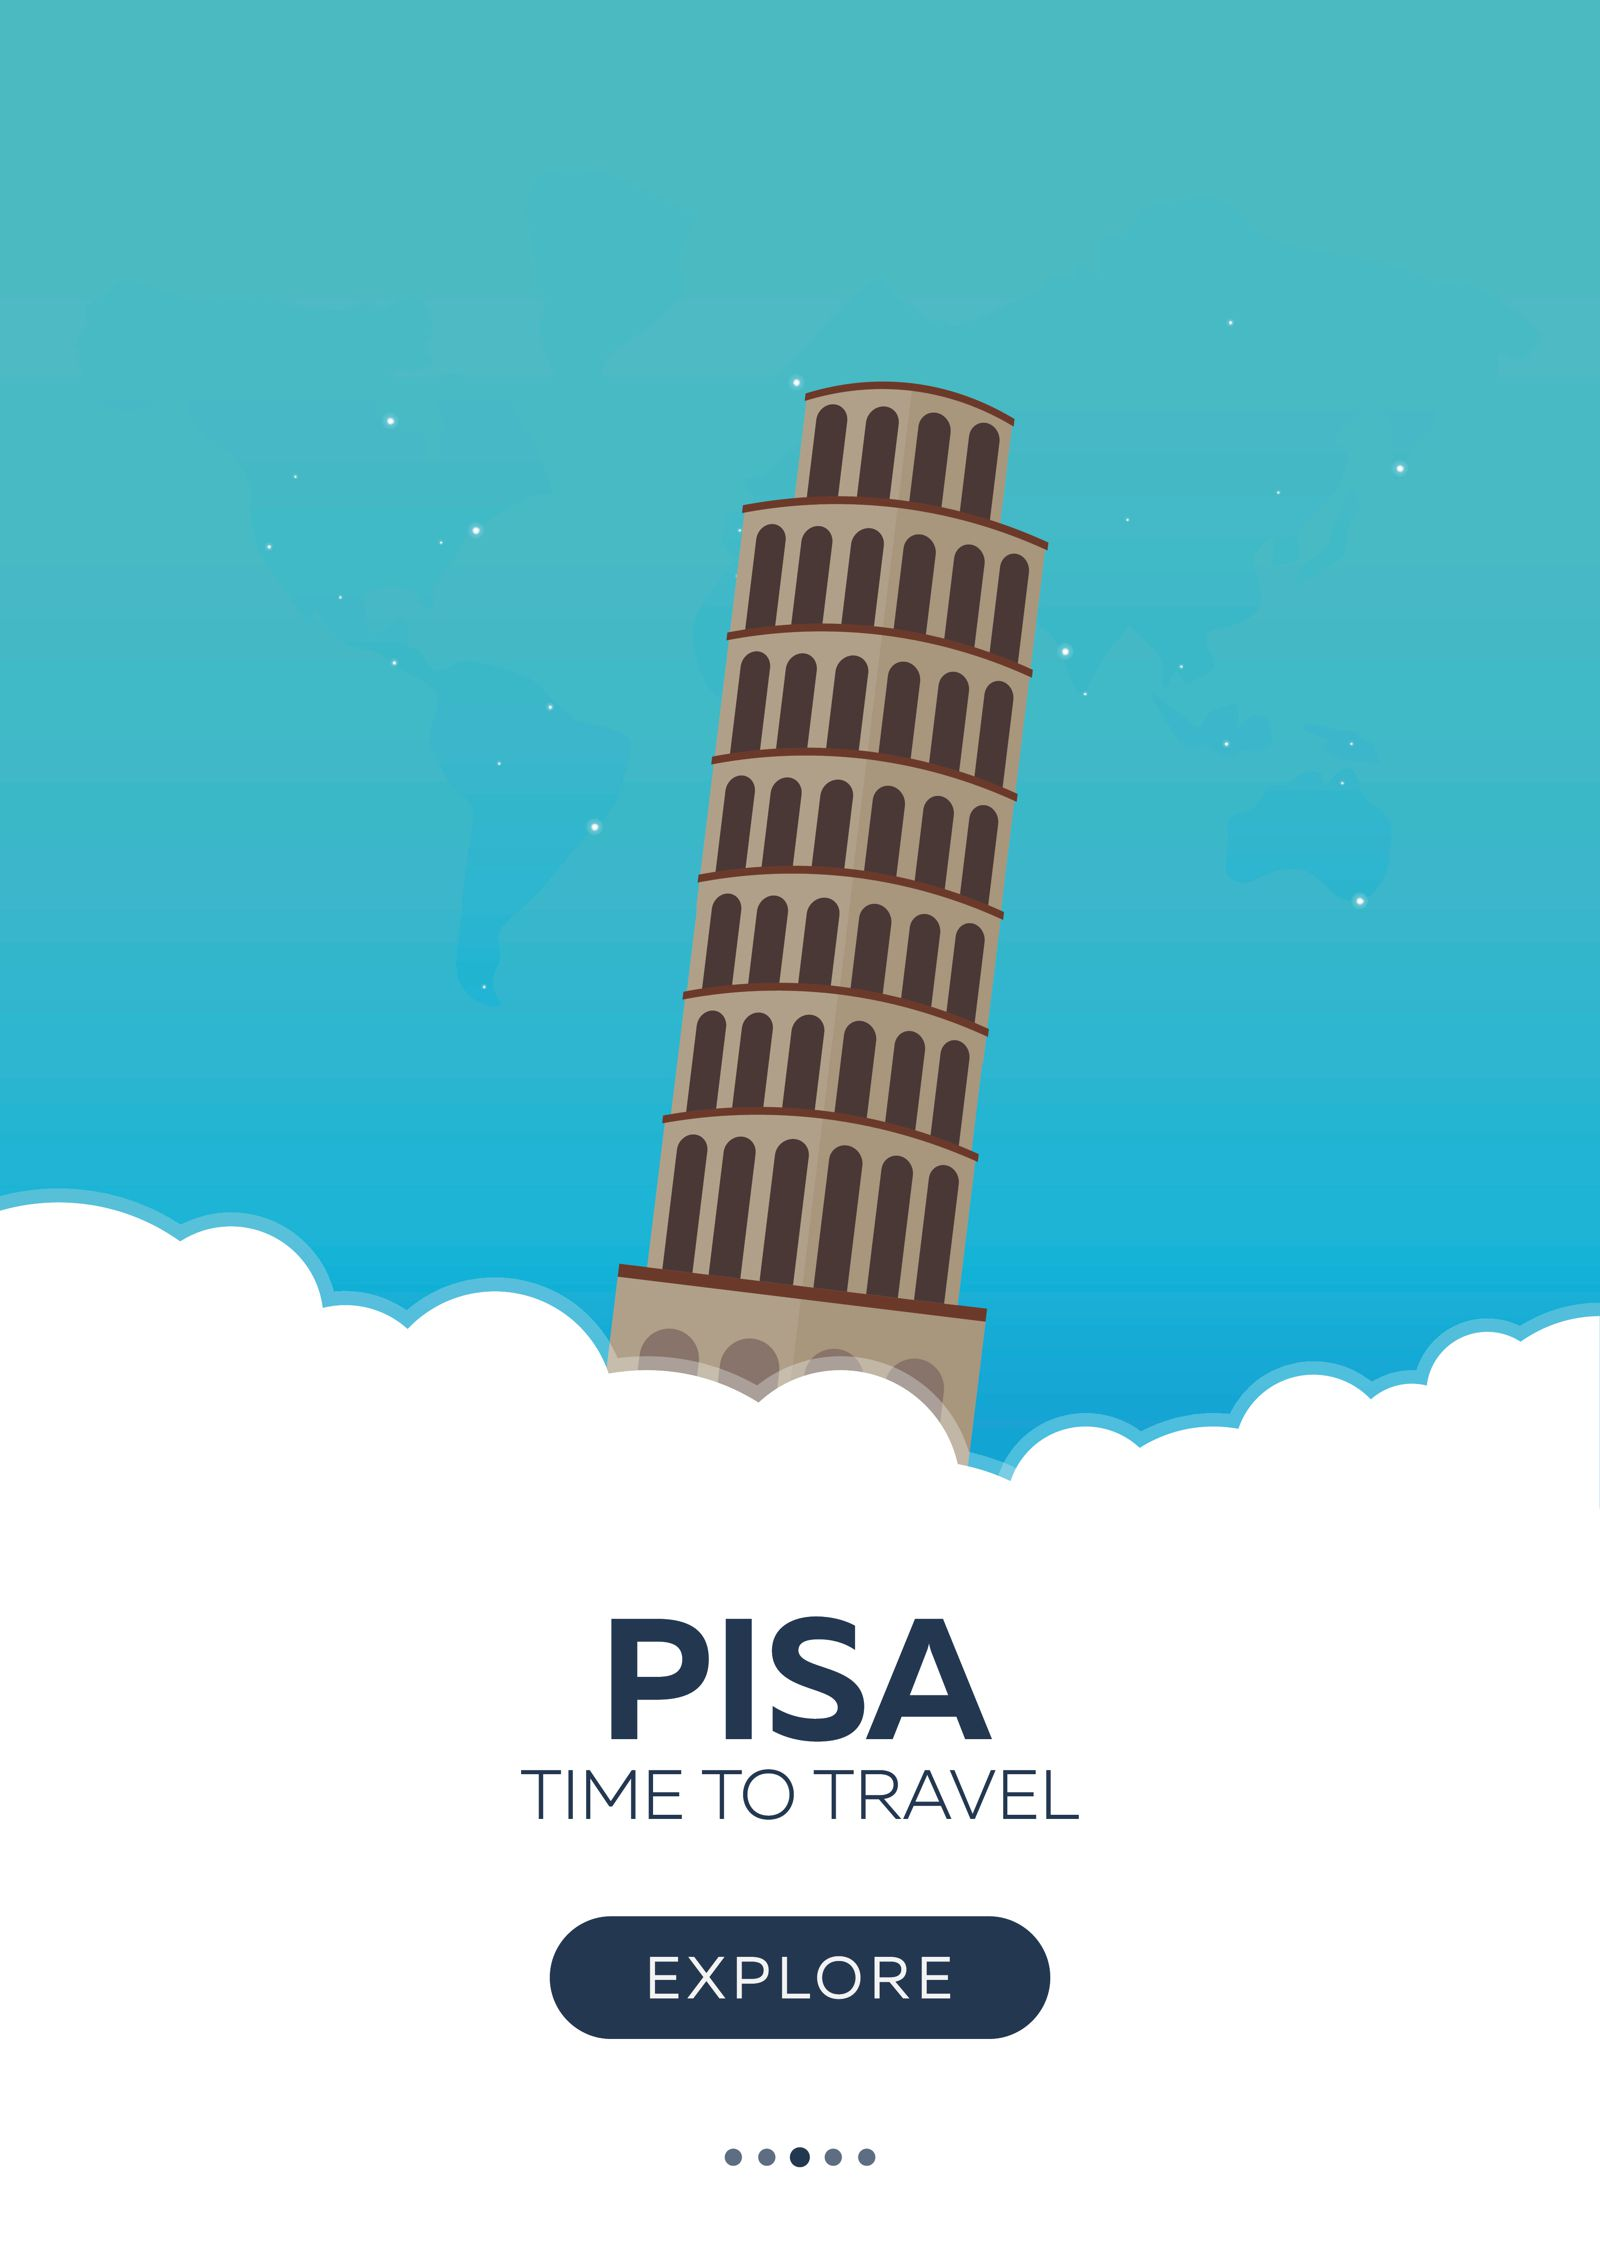 Things to see in Pisa